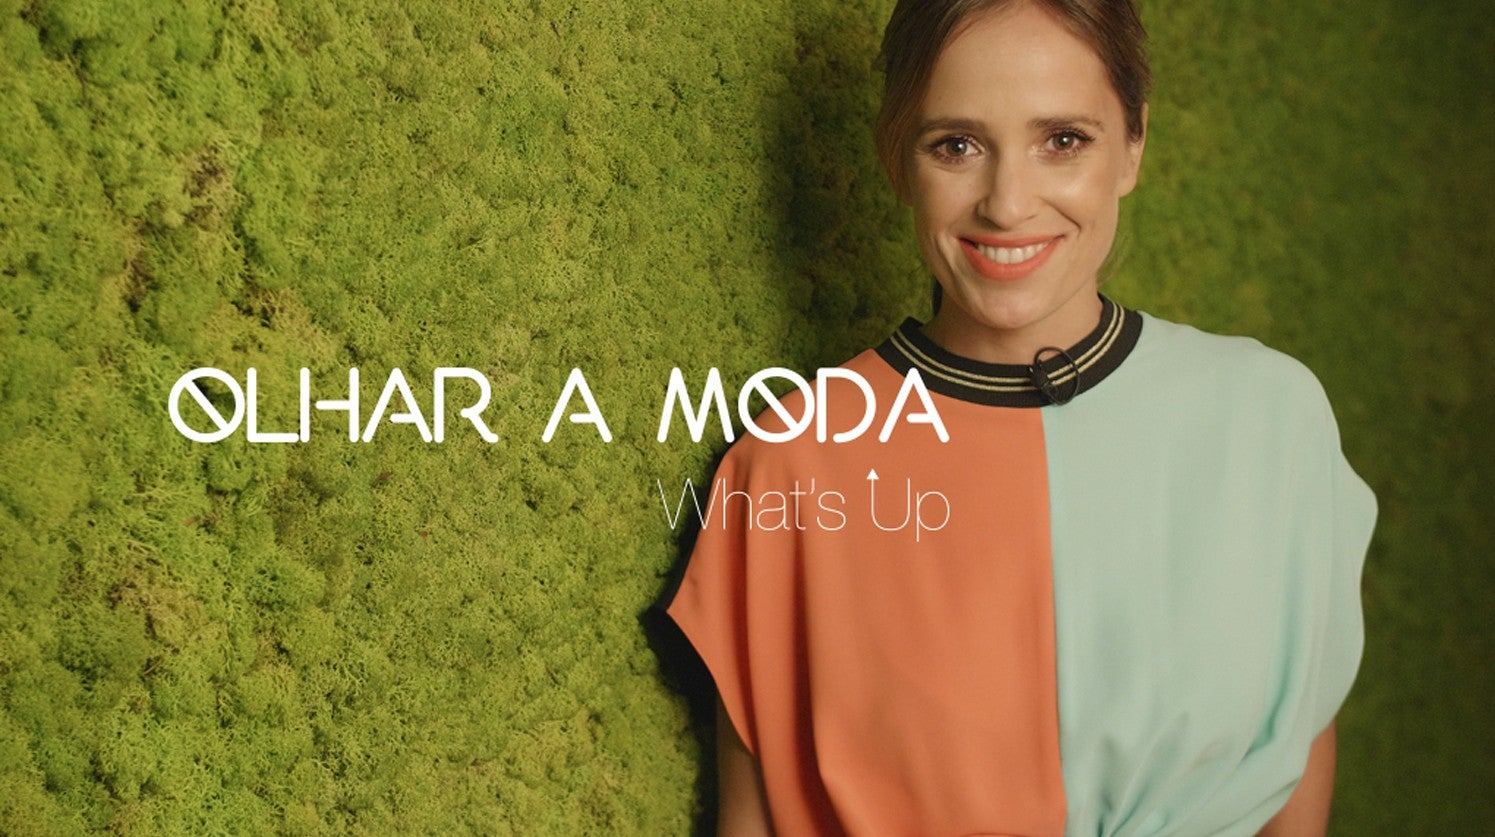 What´s Up  - Olhar a Moda